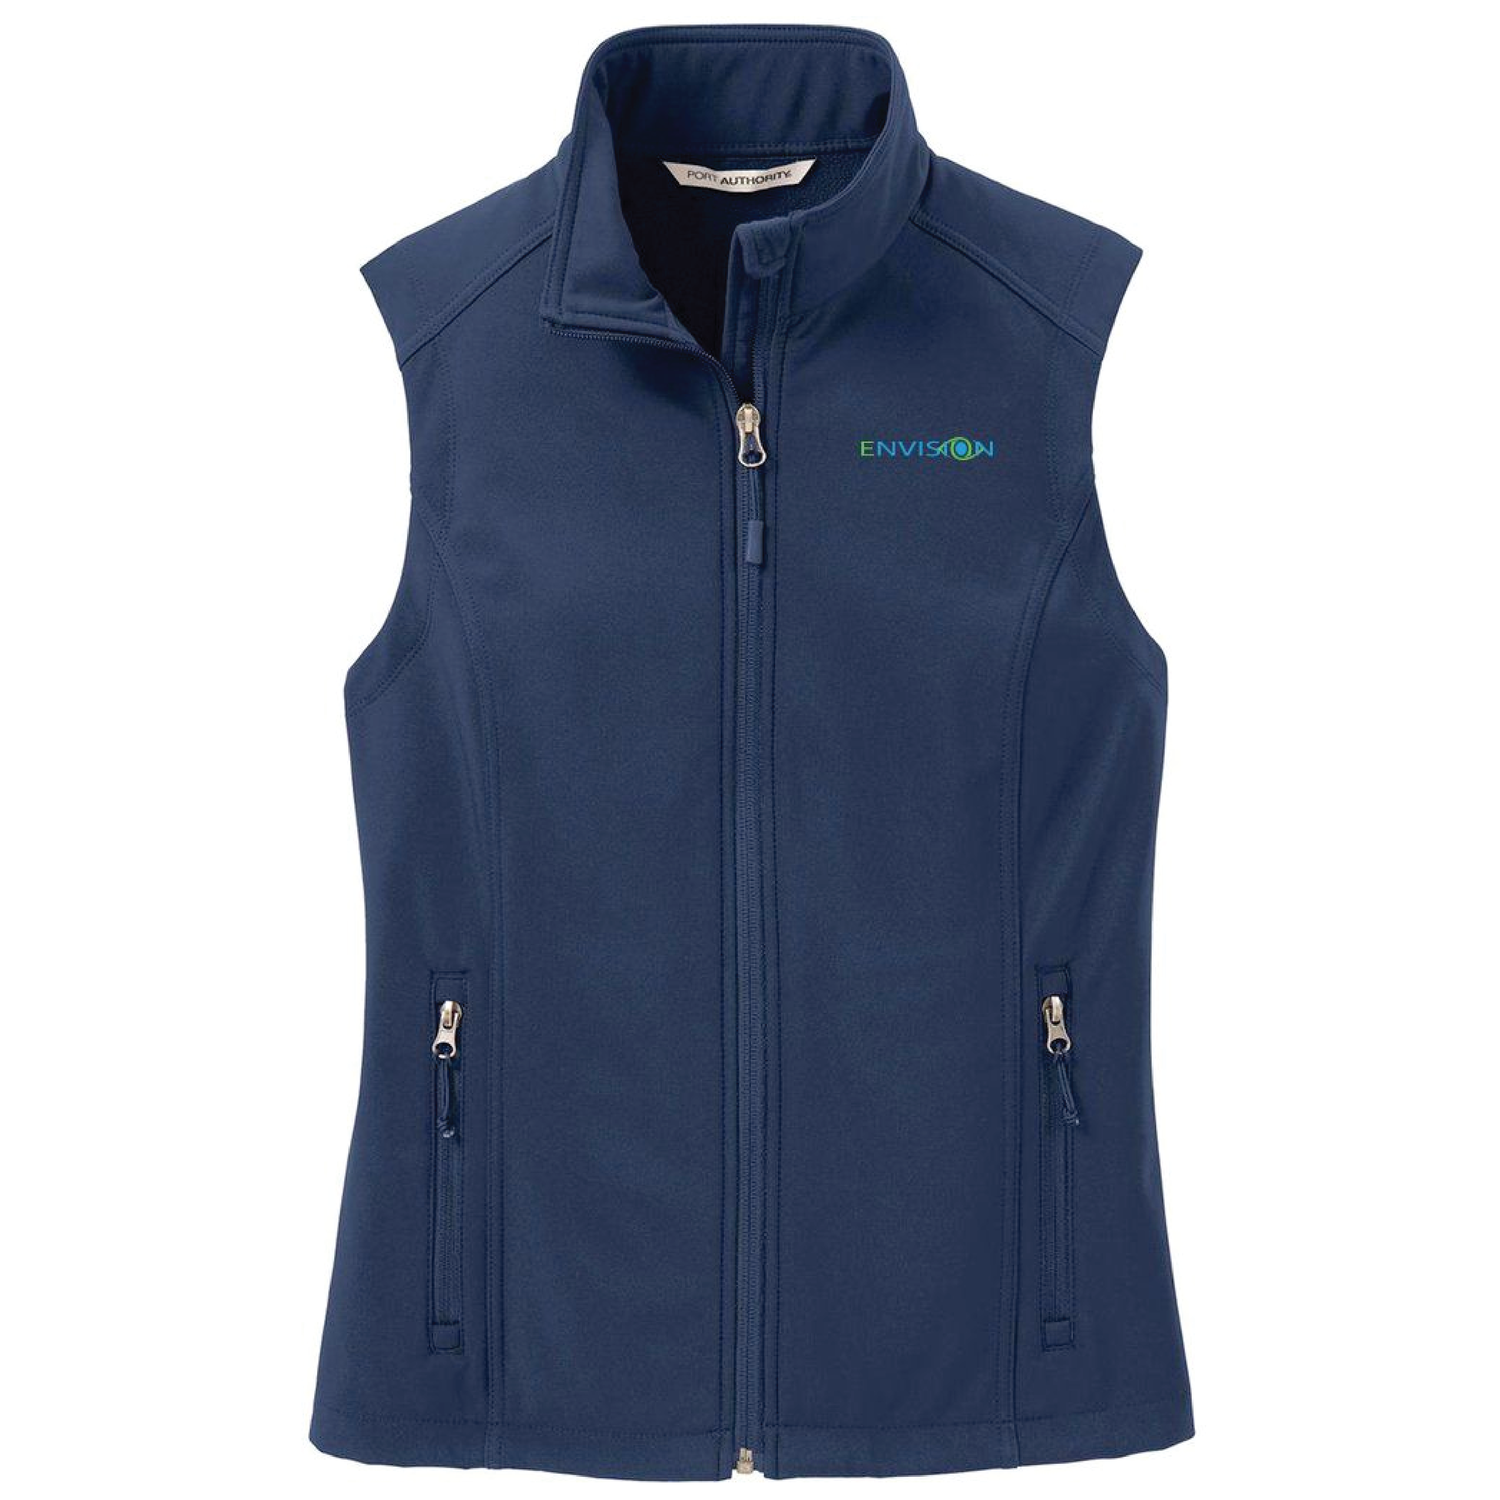 Envision Women's Vest: L325 Port Authority Women's Core Softshell Vest